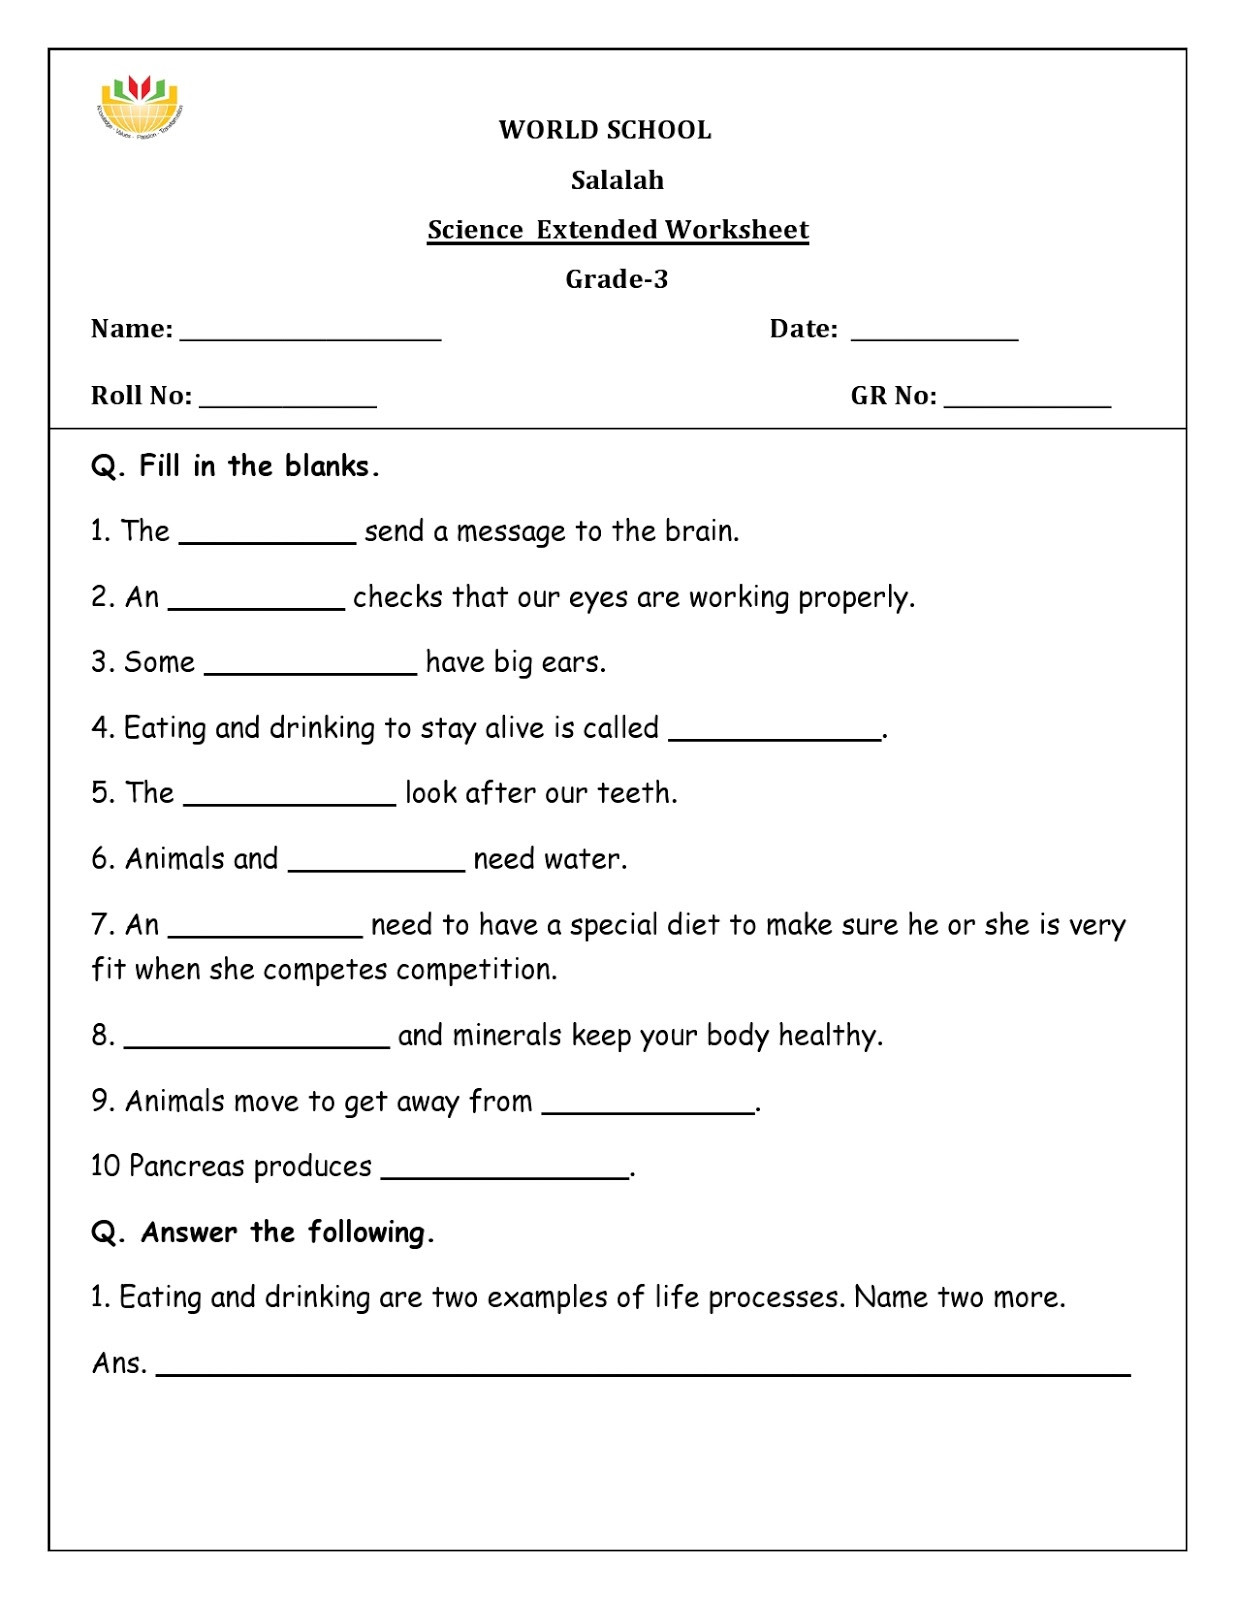 Science Fusion Grade 3 Worksheets Beginning Decimals Worksheets Consonant sounds Worksheets